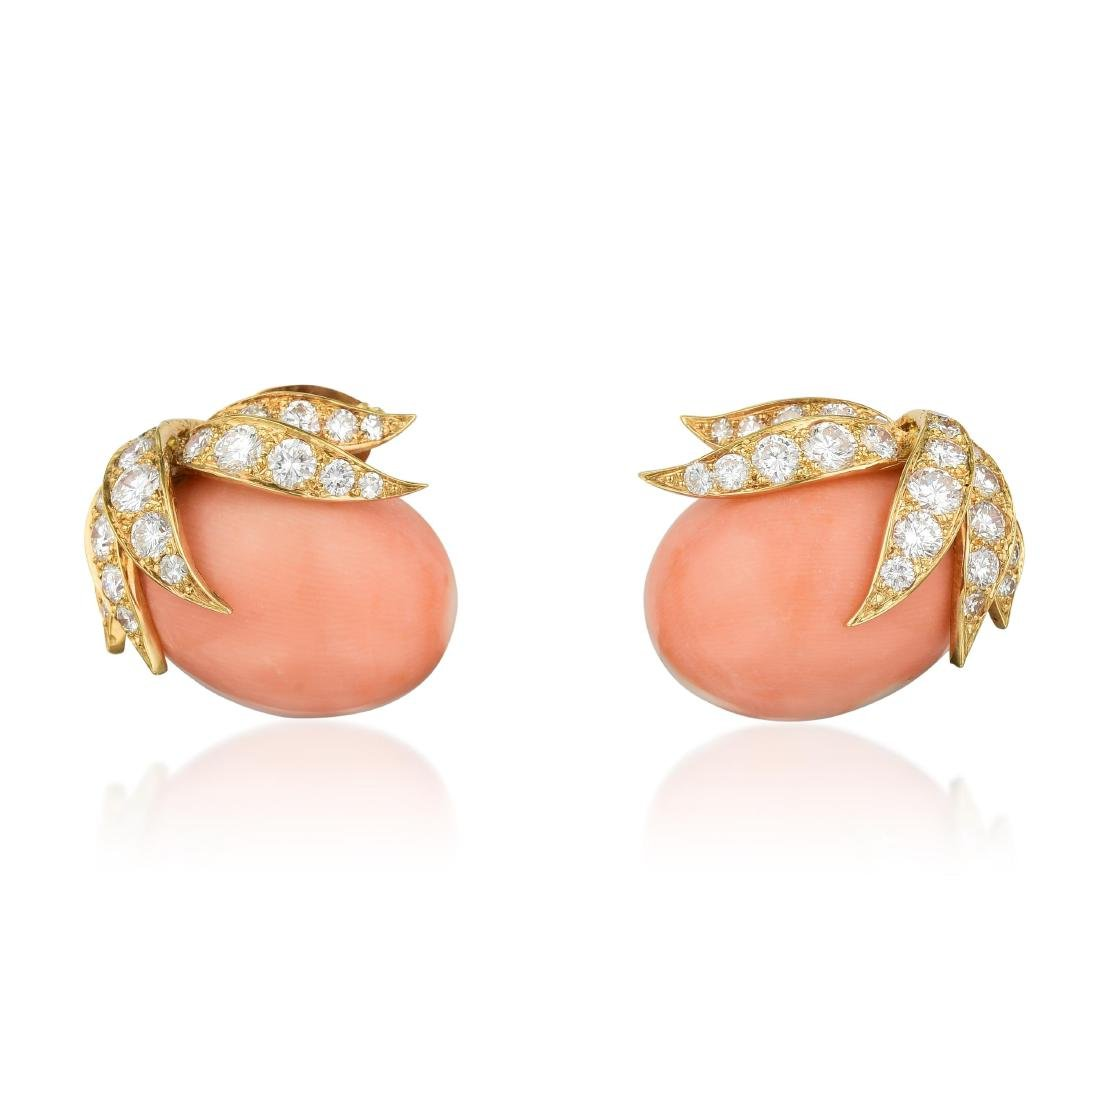 A Coral and Diamond Ring and Earrings Set, French - 2